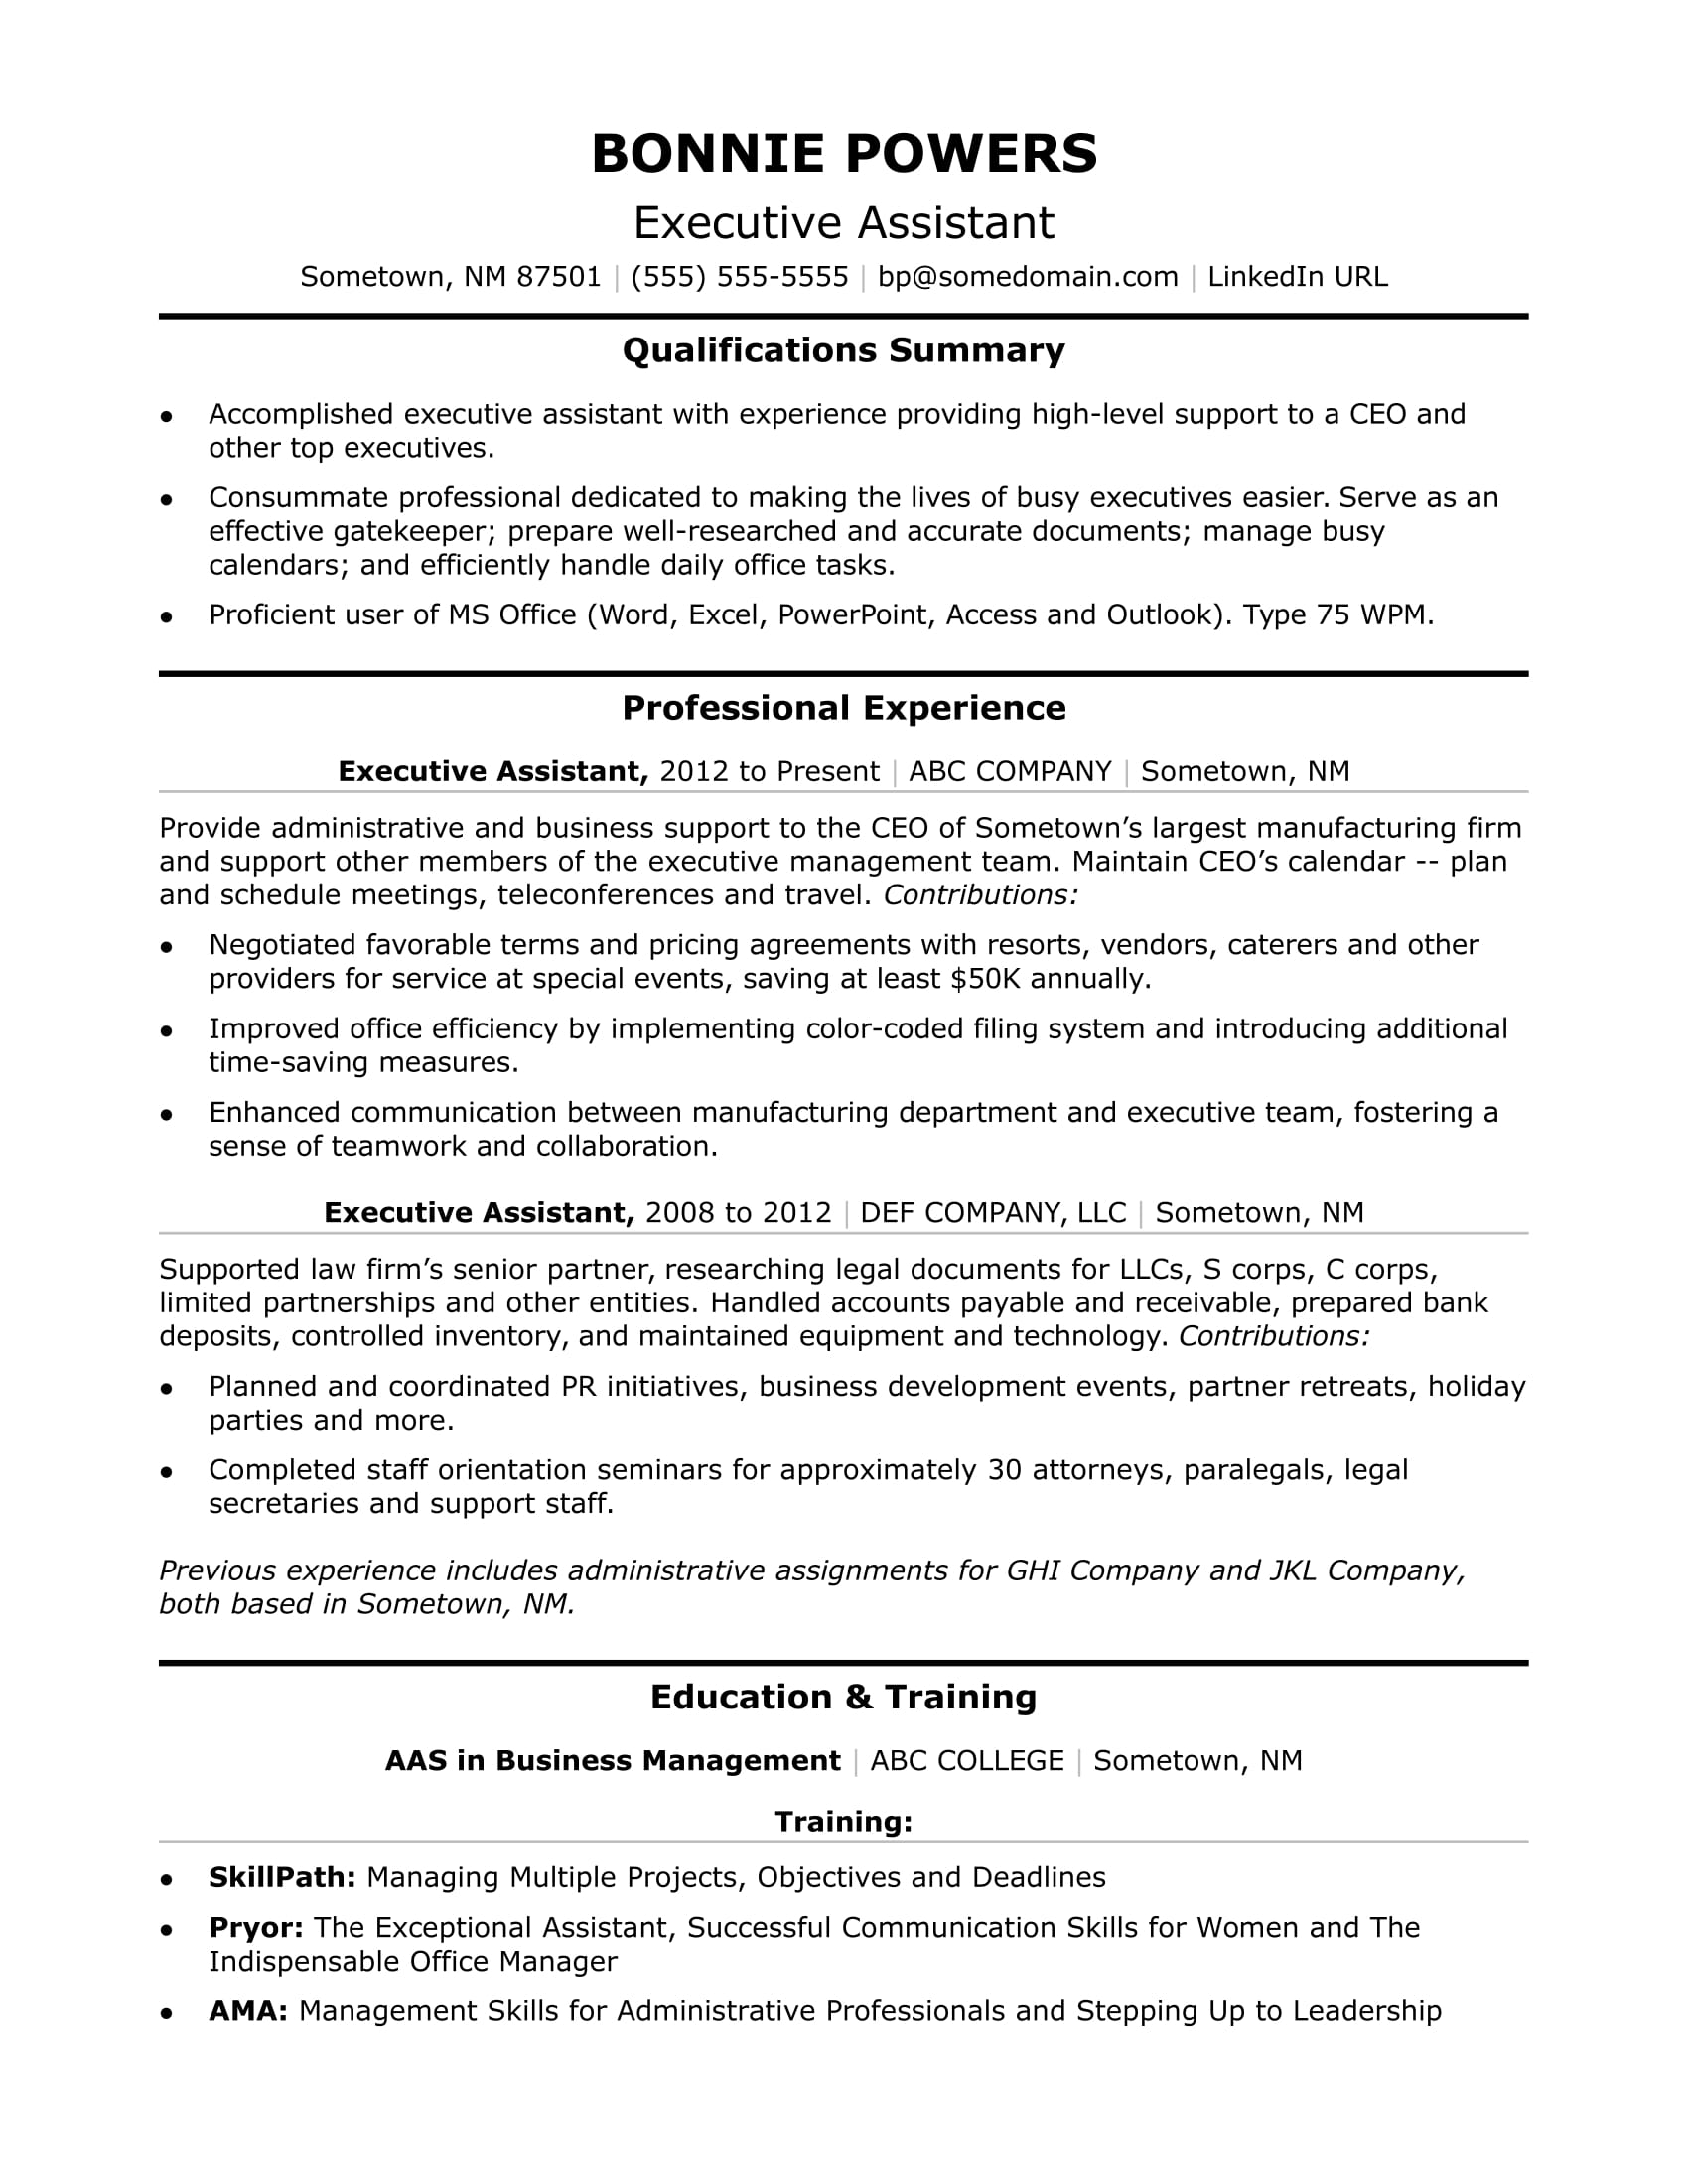 executive administrative assistant resume sample monster job description career objective Resume Executive Assistant Job Description Resume